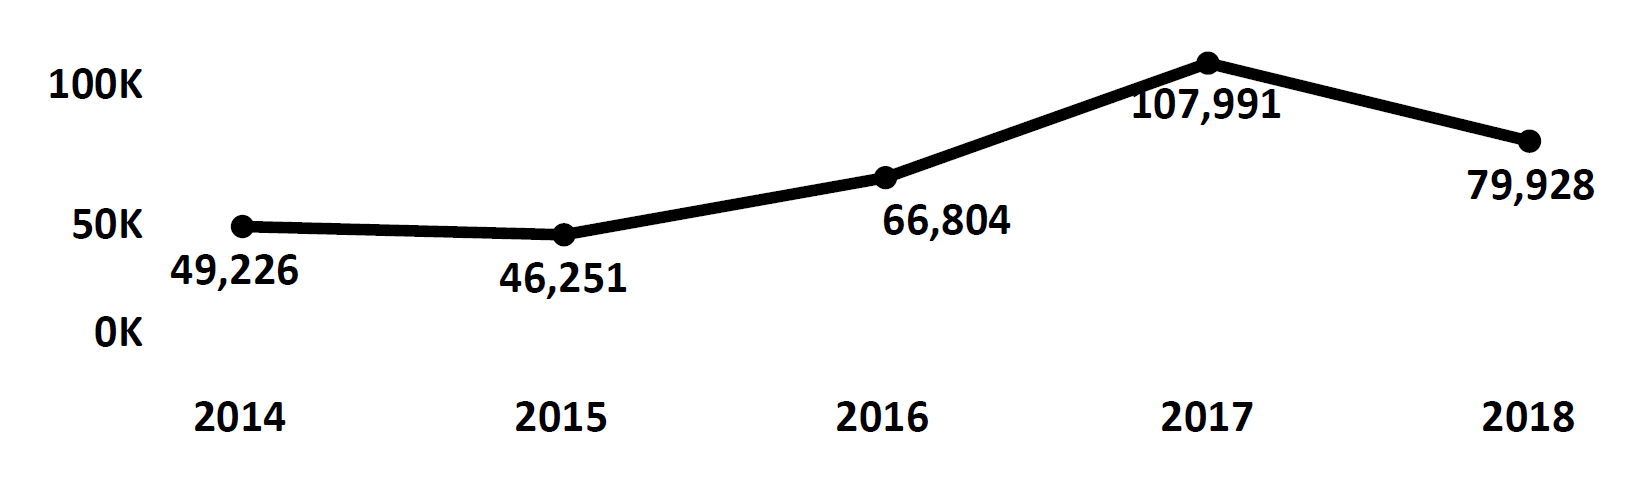 Graph of Do Not Call complaints recorded in Alabama from fiscal year 2014 to fiscal year 2018. In 2014 there were 49,226 complaints filed, which dipped slightly in 2015, then trended upward to peak in 2017 at 107,991. In 2018 there were 79,928 complaints filed, fewer than 2017.